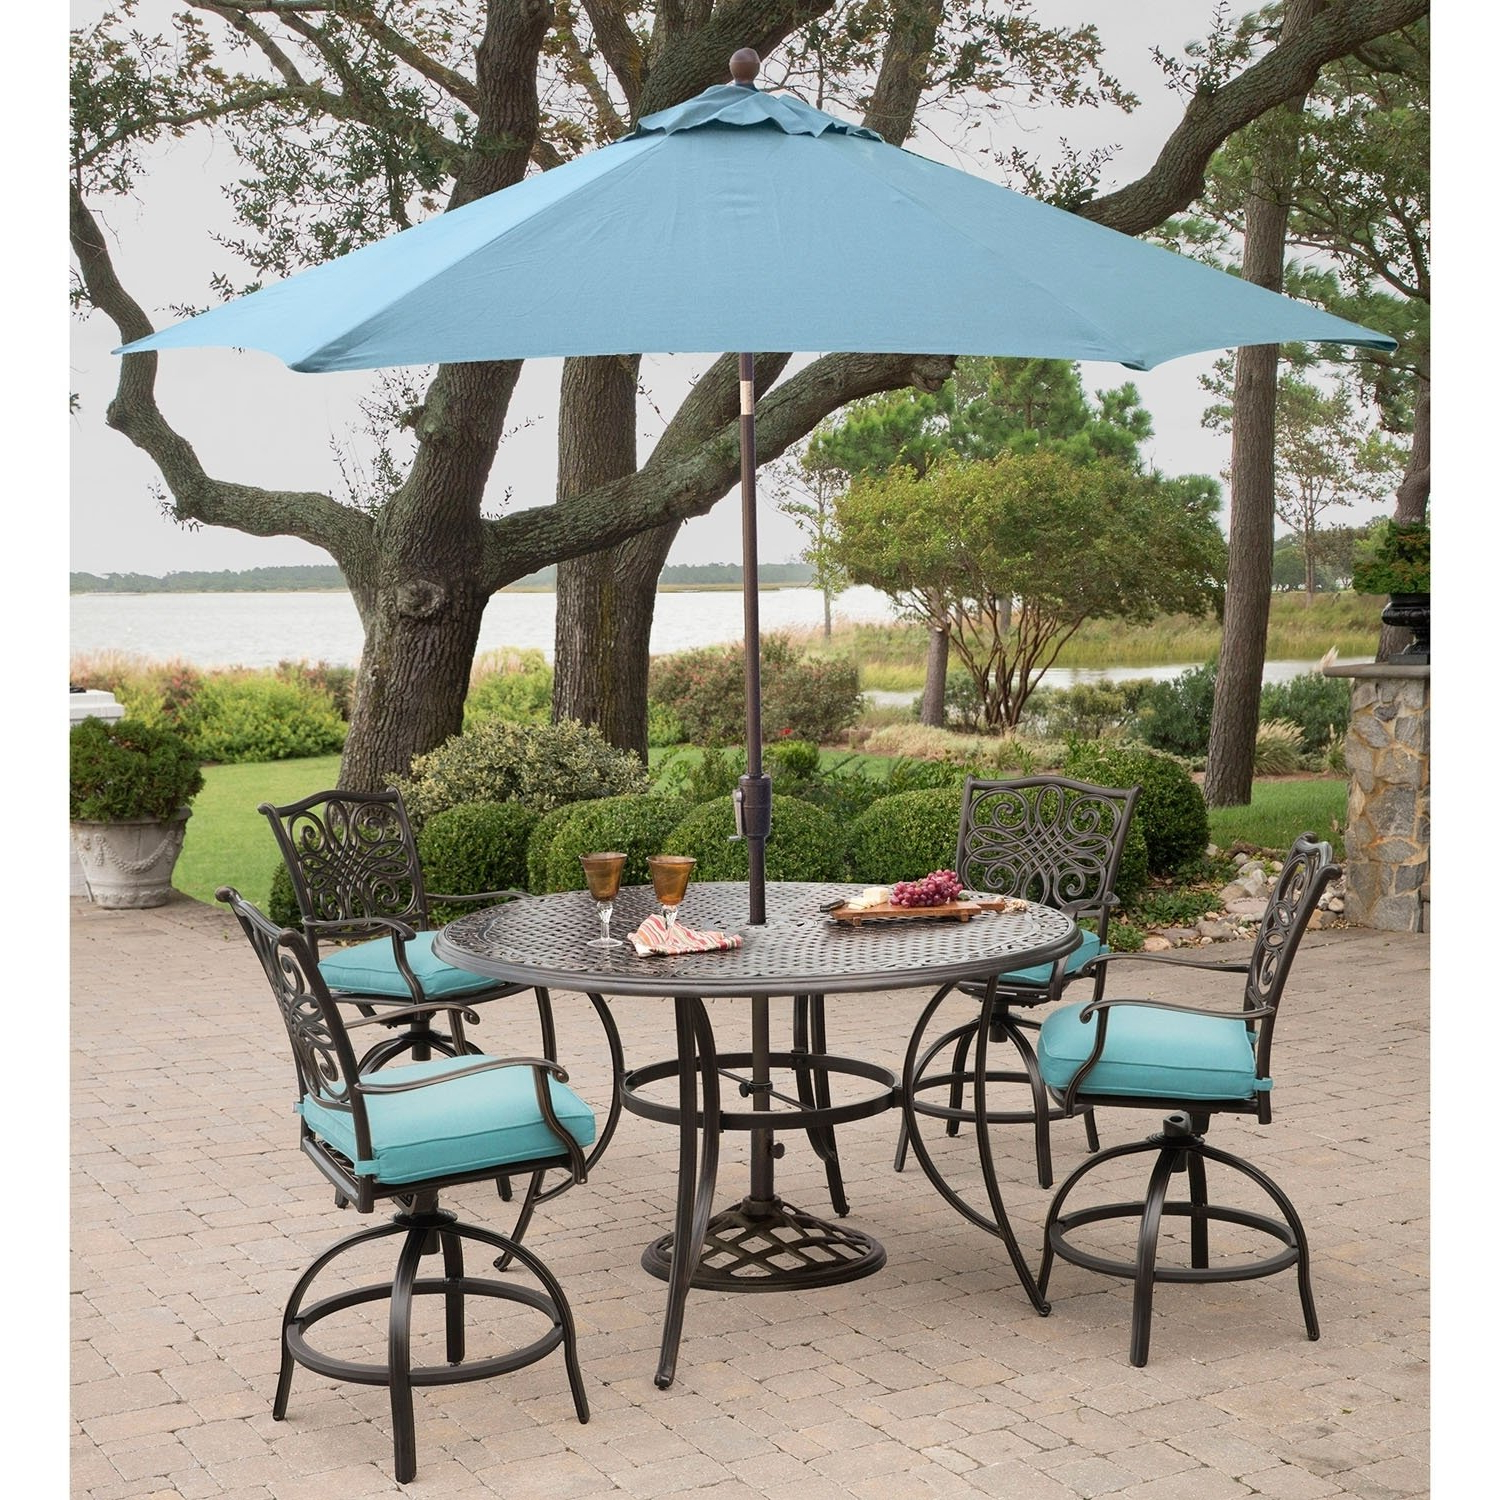 Favorite Traditions 5 Piece High Dining Set In Blue With 4 Swivel Chairs, A Throughout Cannock Market Umbrellas (View 12 of 20)